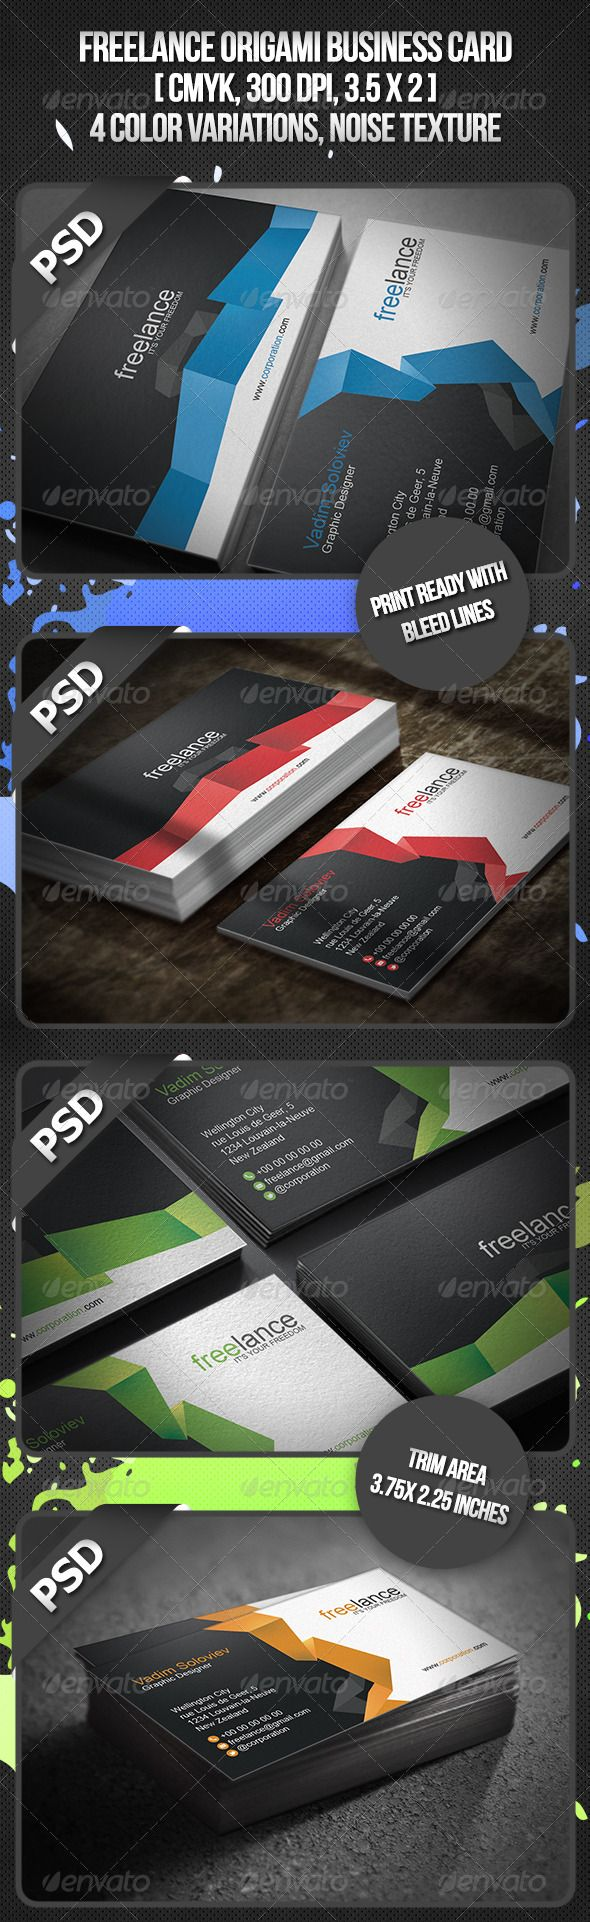 Freelance origami business card business cards origami and business freelance origami business card jeuxipadfo Gallery